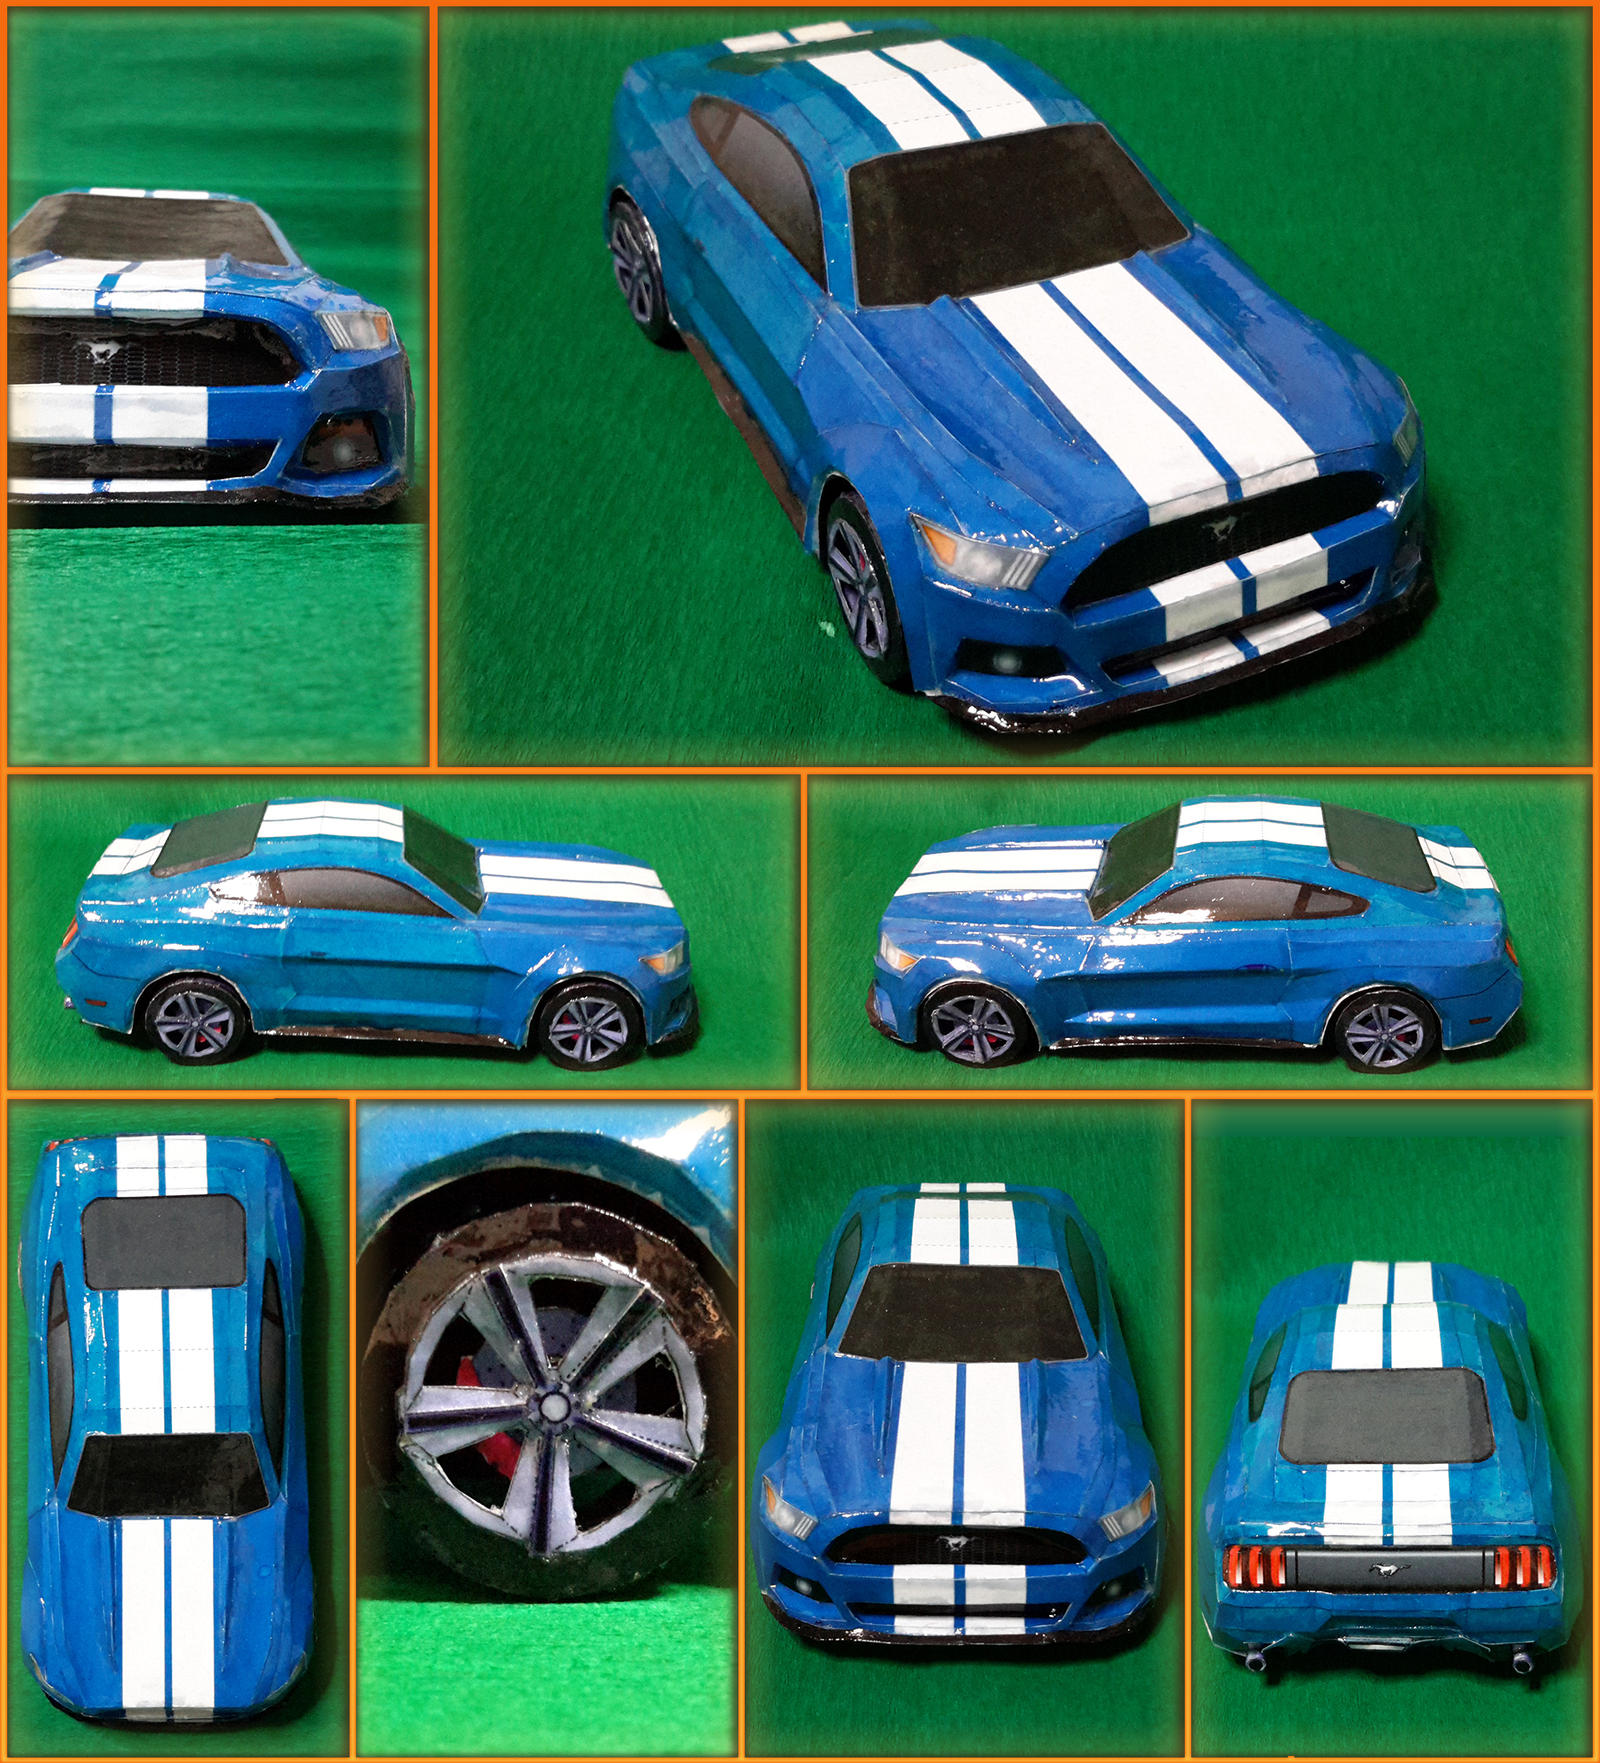 Papercraft Ford Images - Reverse Search